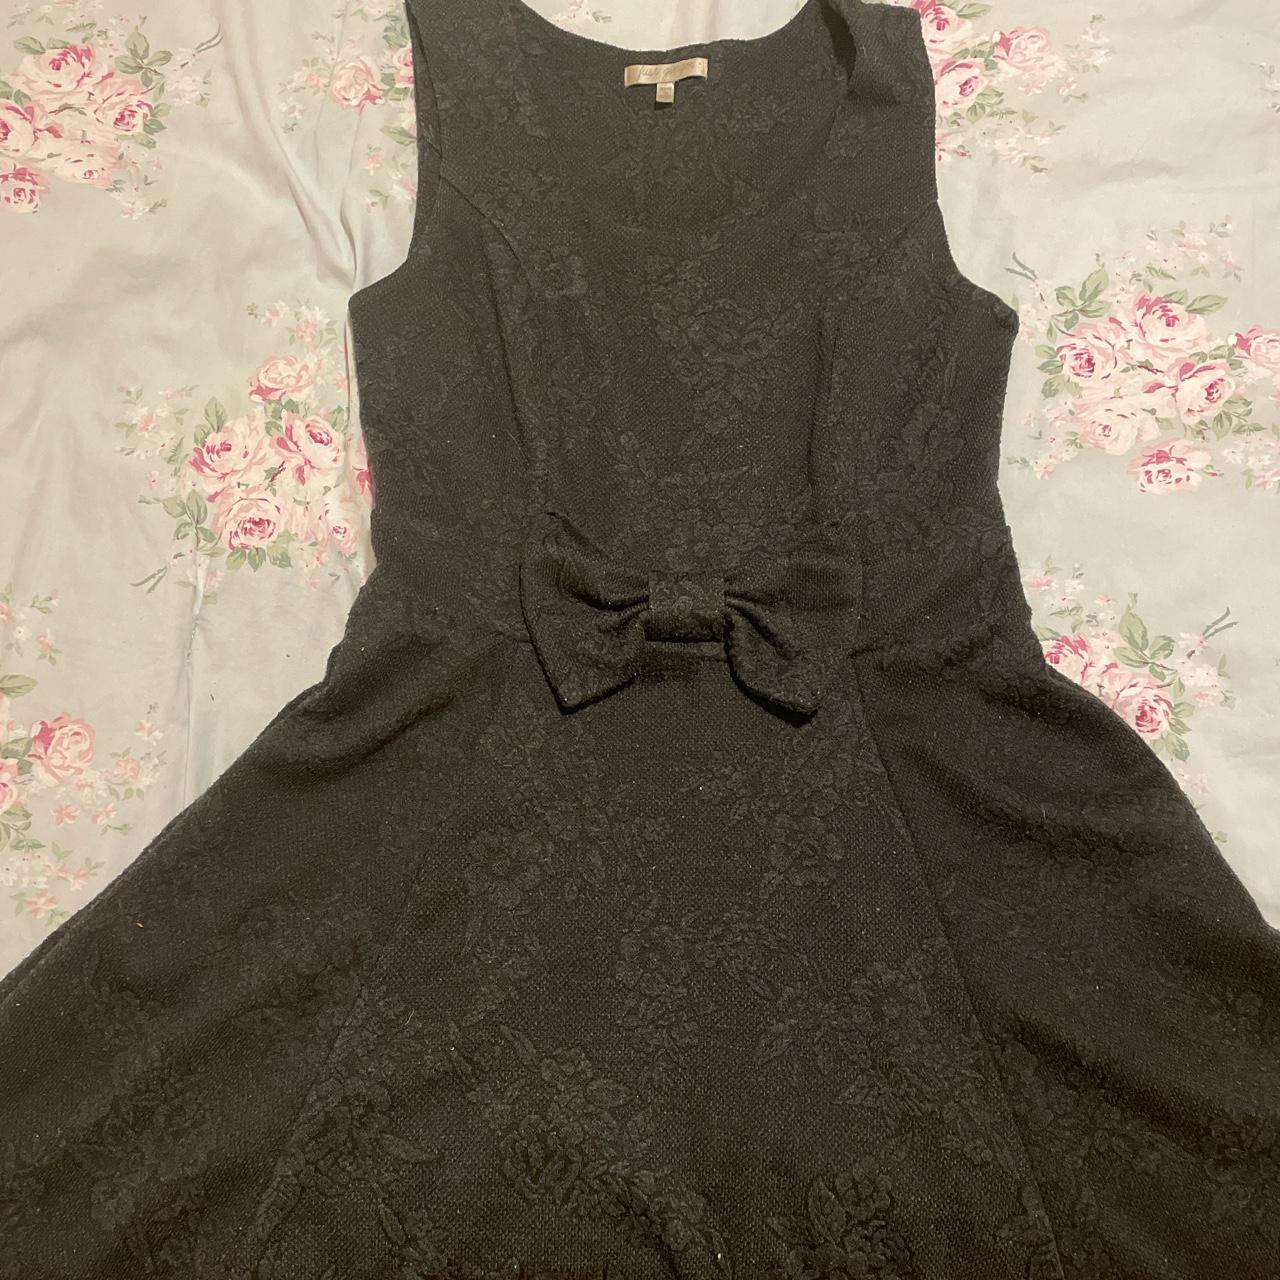 Product Image 1 - A patterned babydoll dress! This